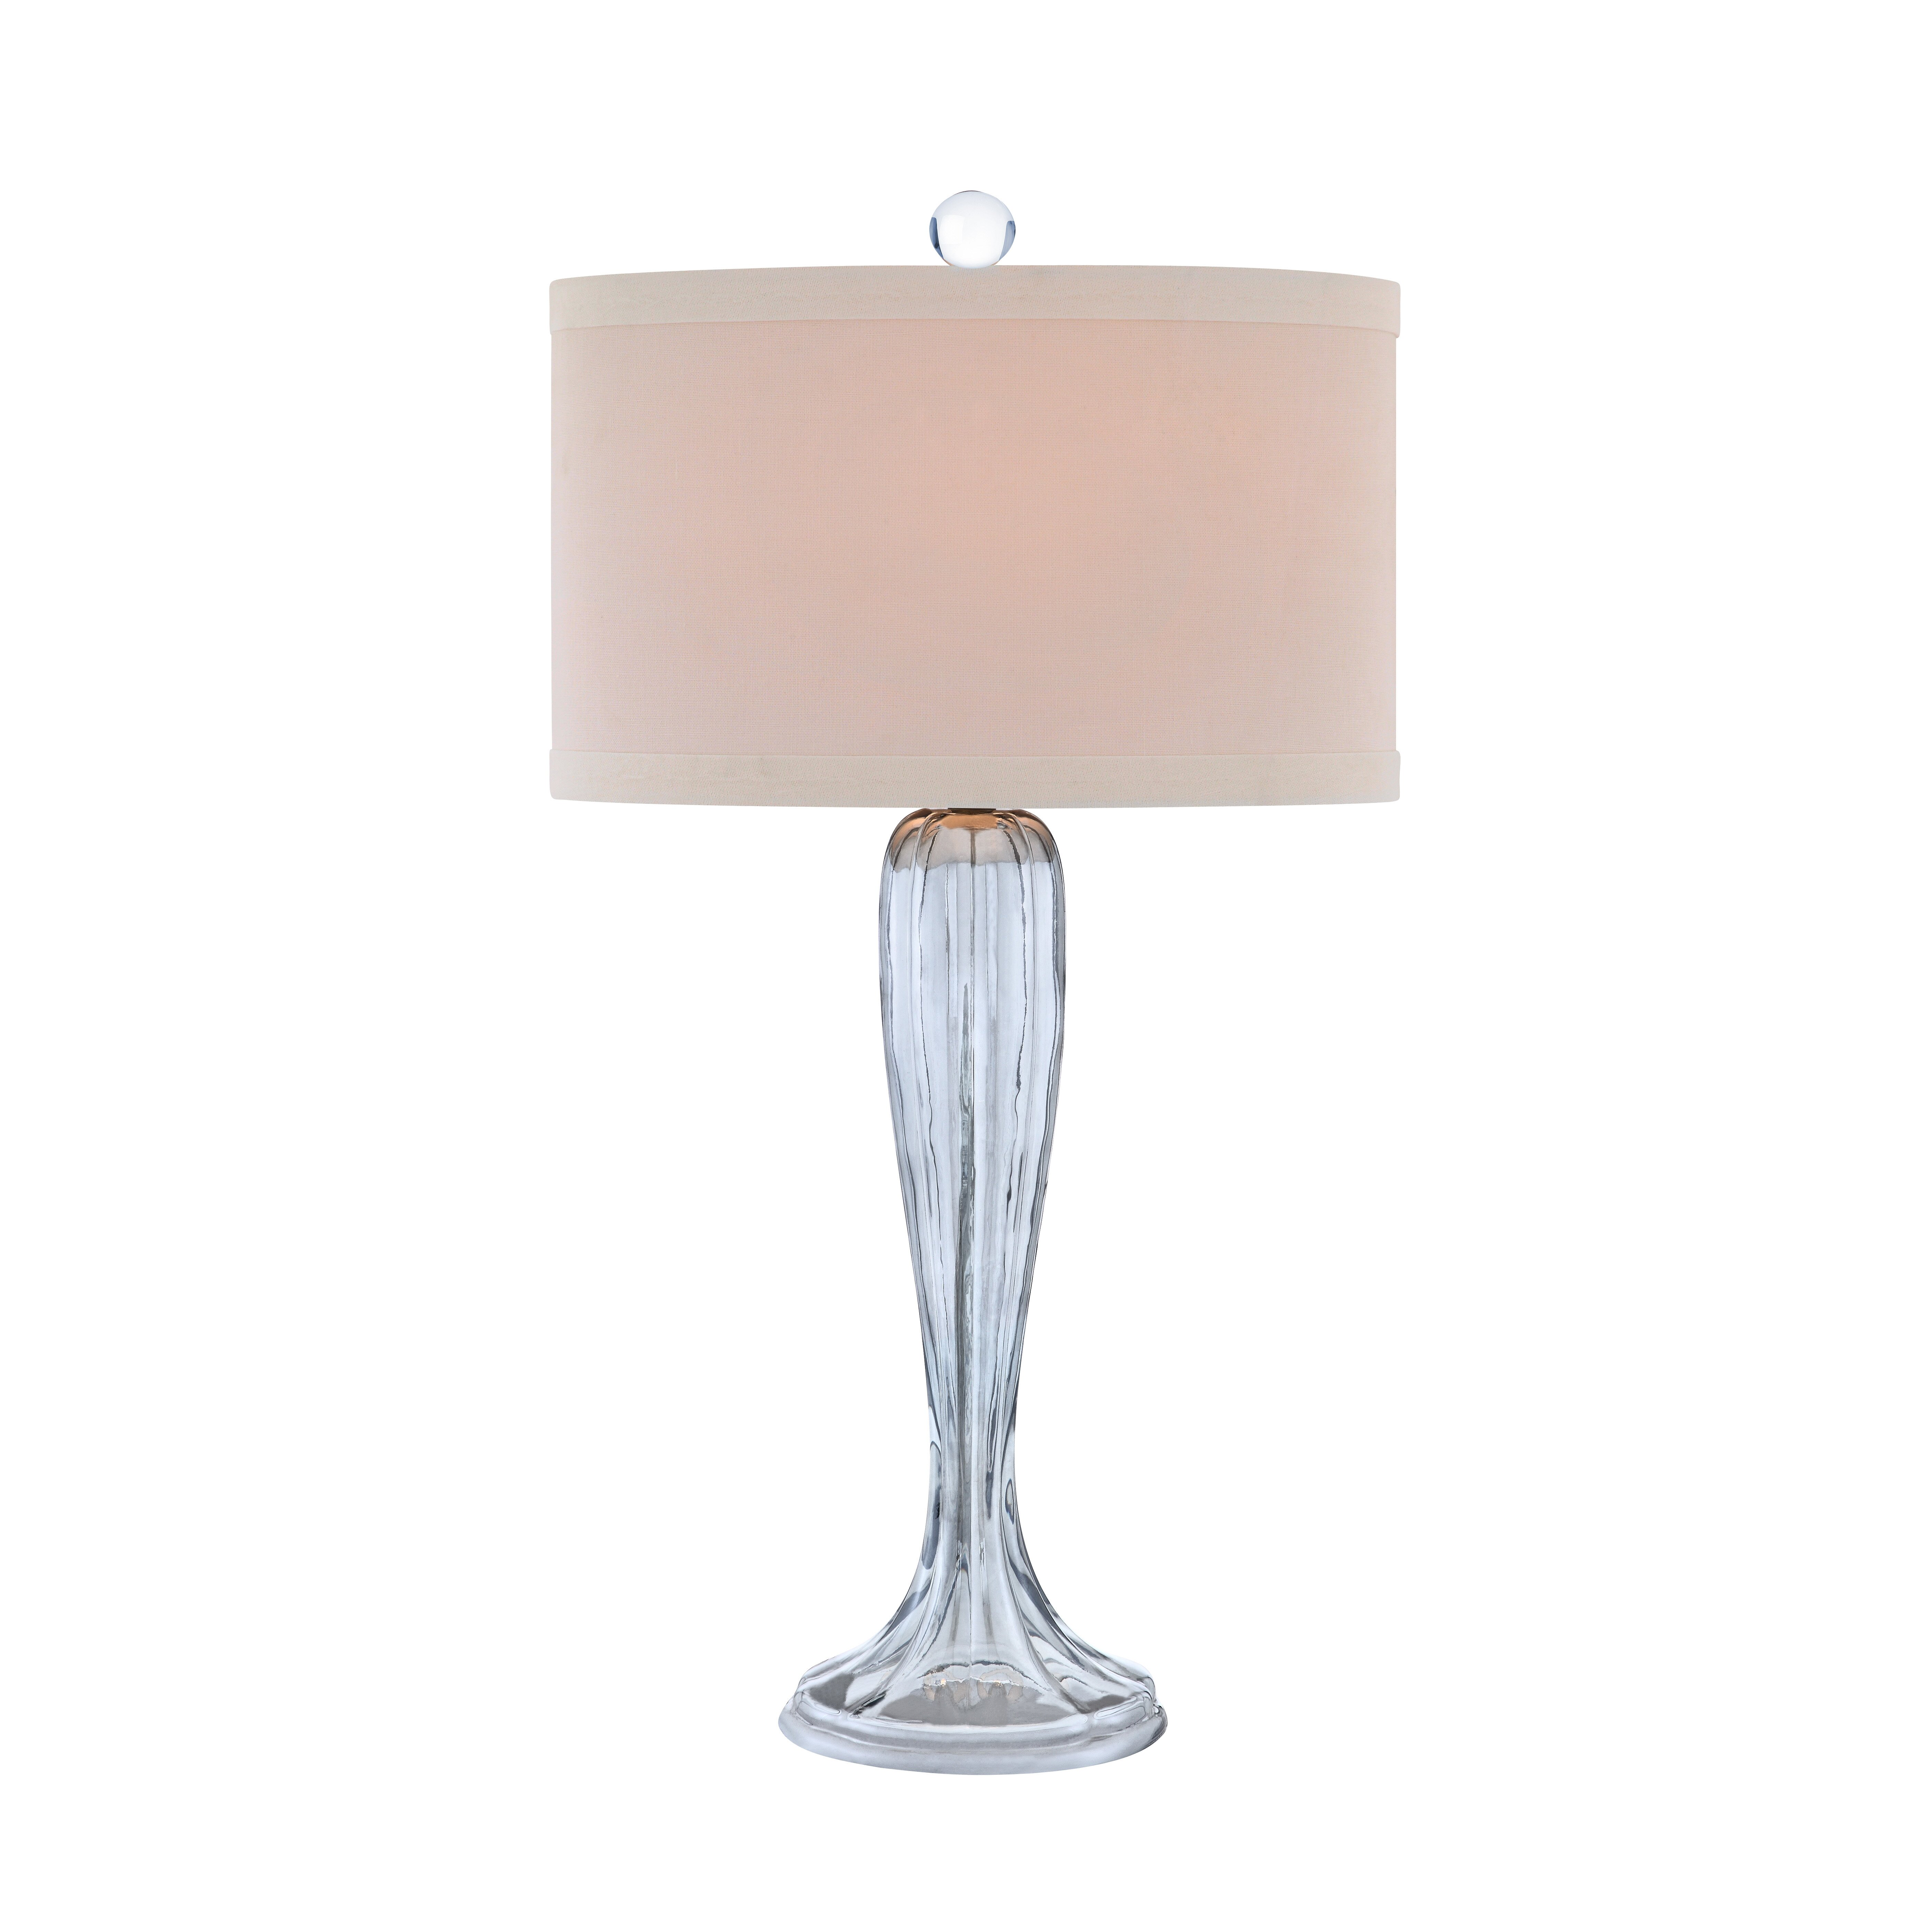 lighting lamps satin nickel table lamps catalina lighting sku. Black Bedroom Furniture Sets. Home Design Ideas